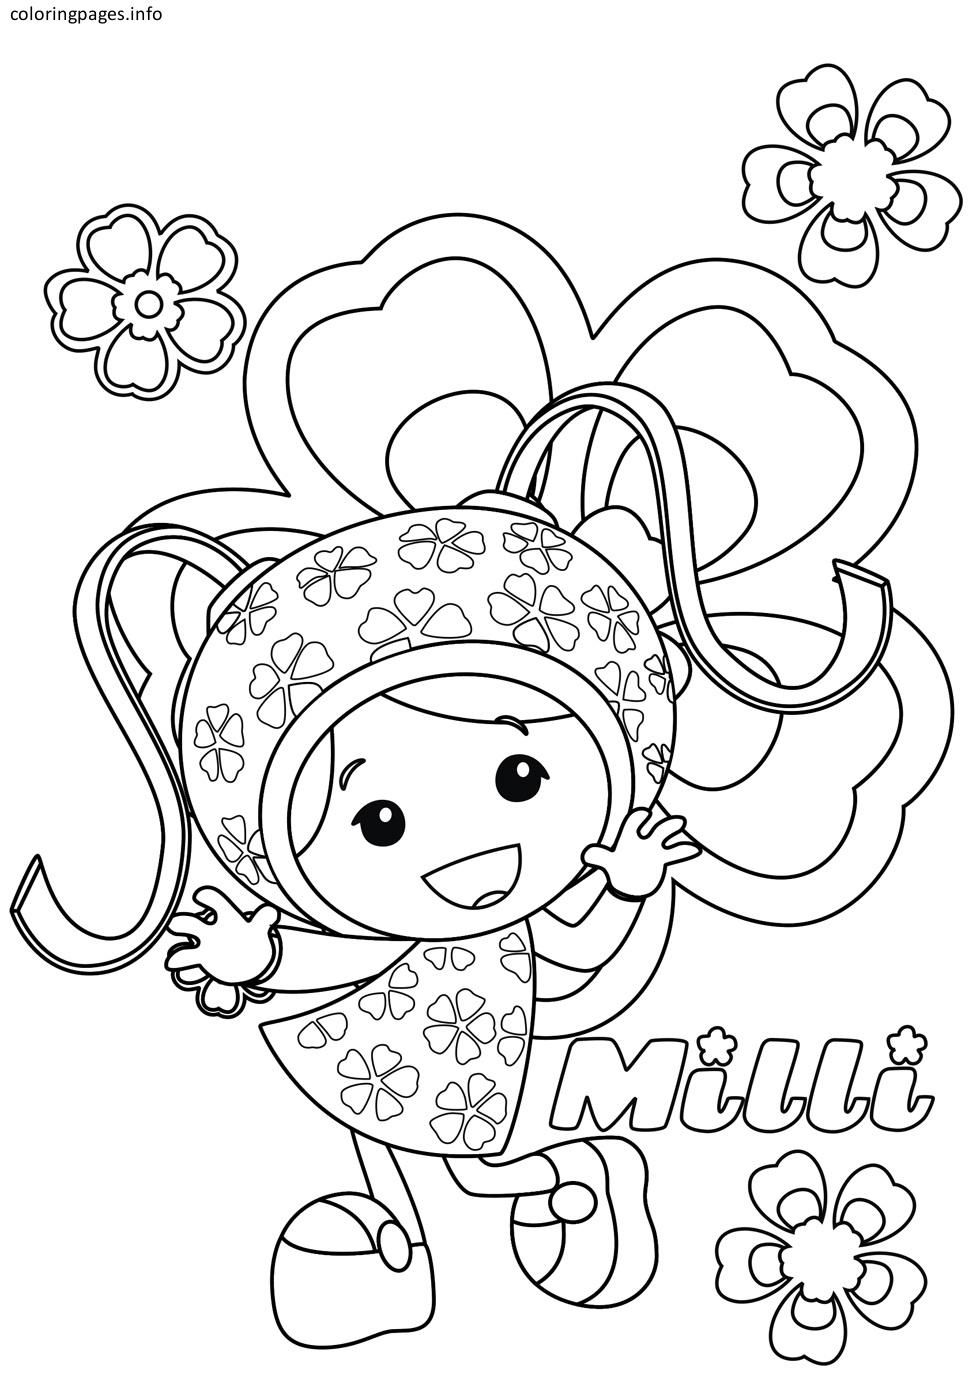 team umizoomi milli coloring pages | Coloring Pages | Pinterest ...